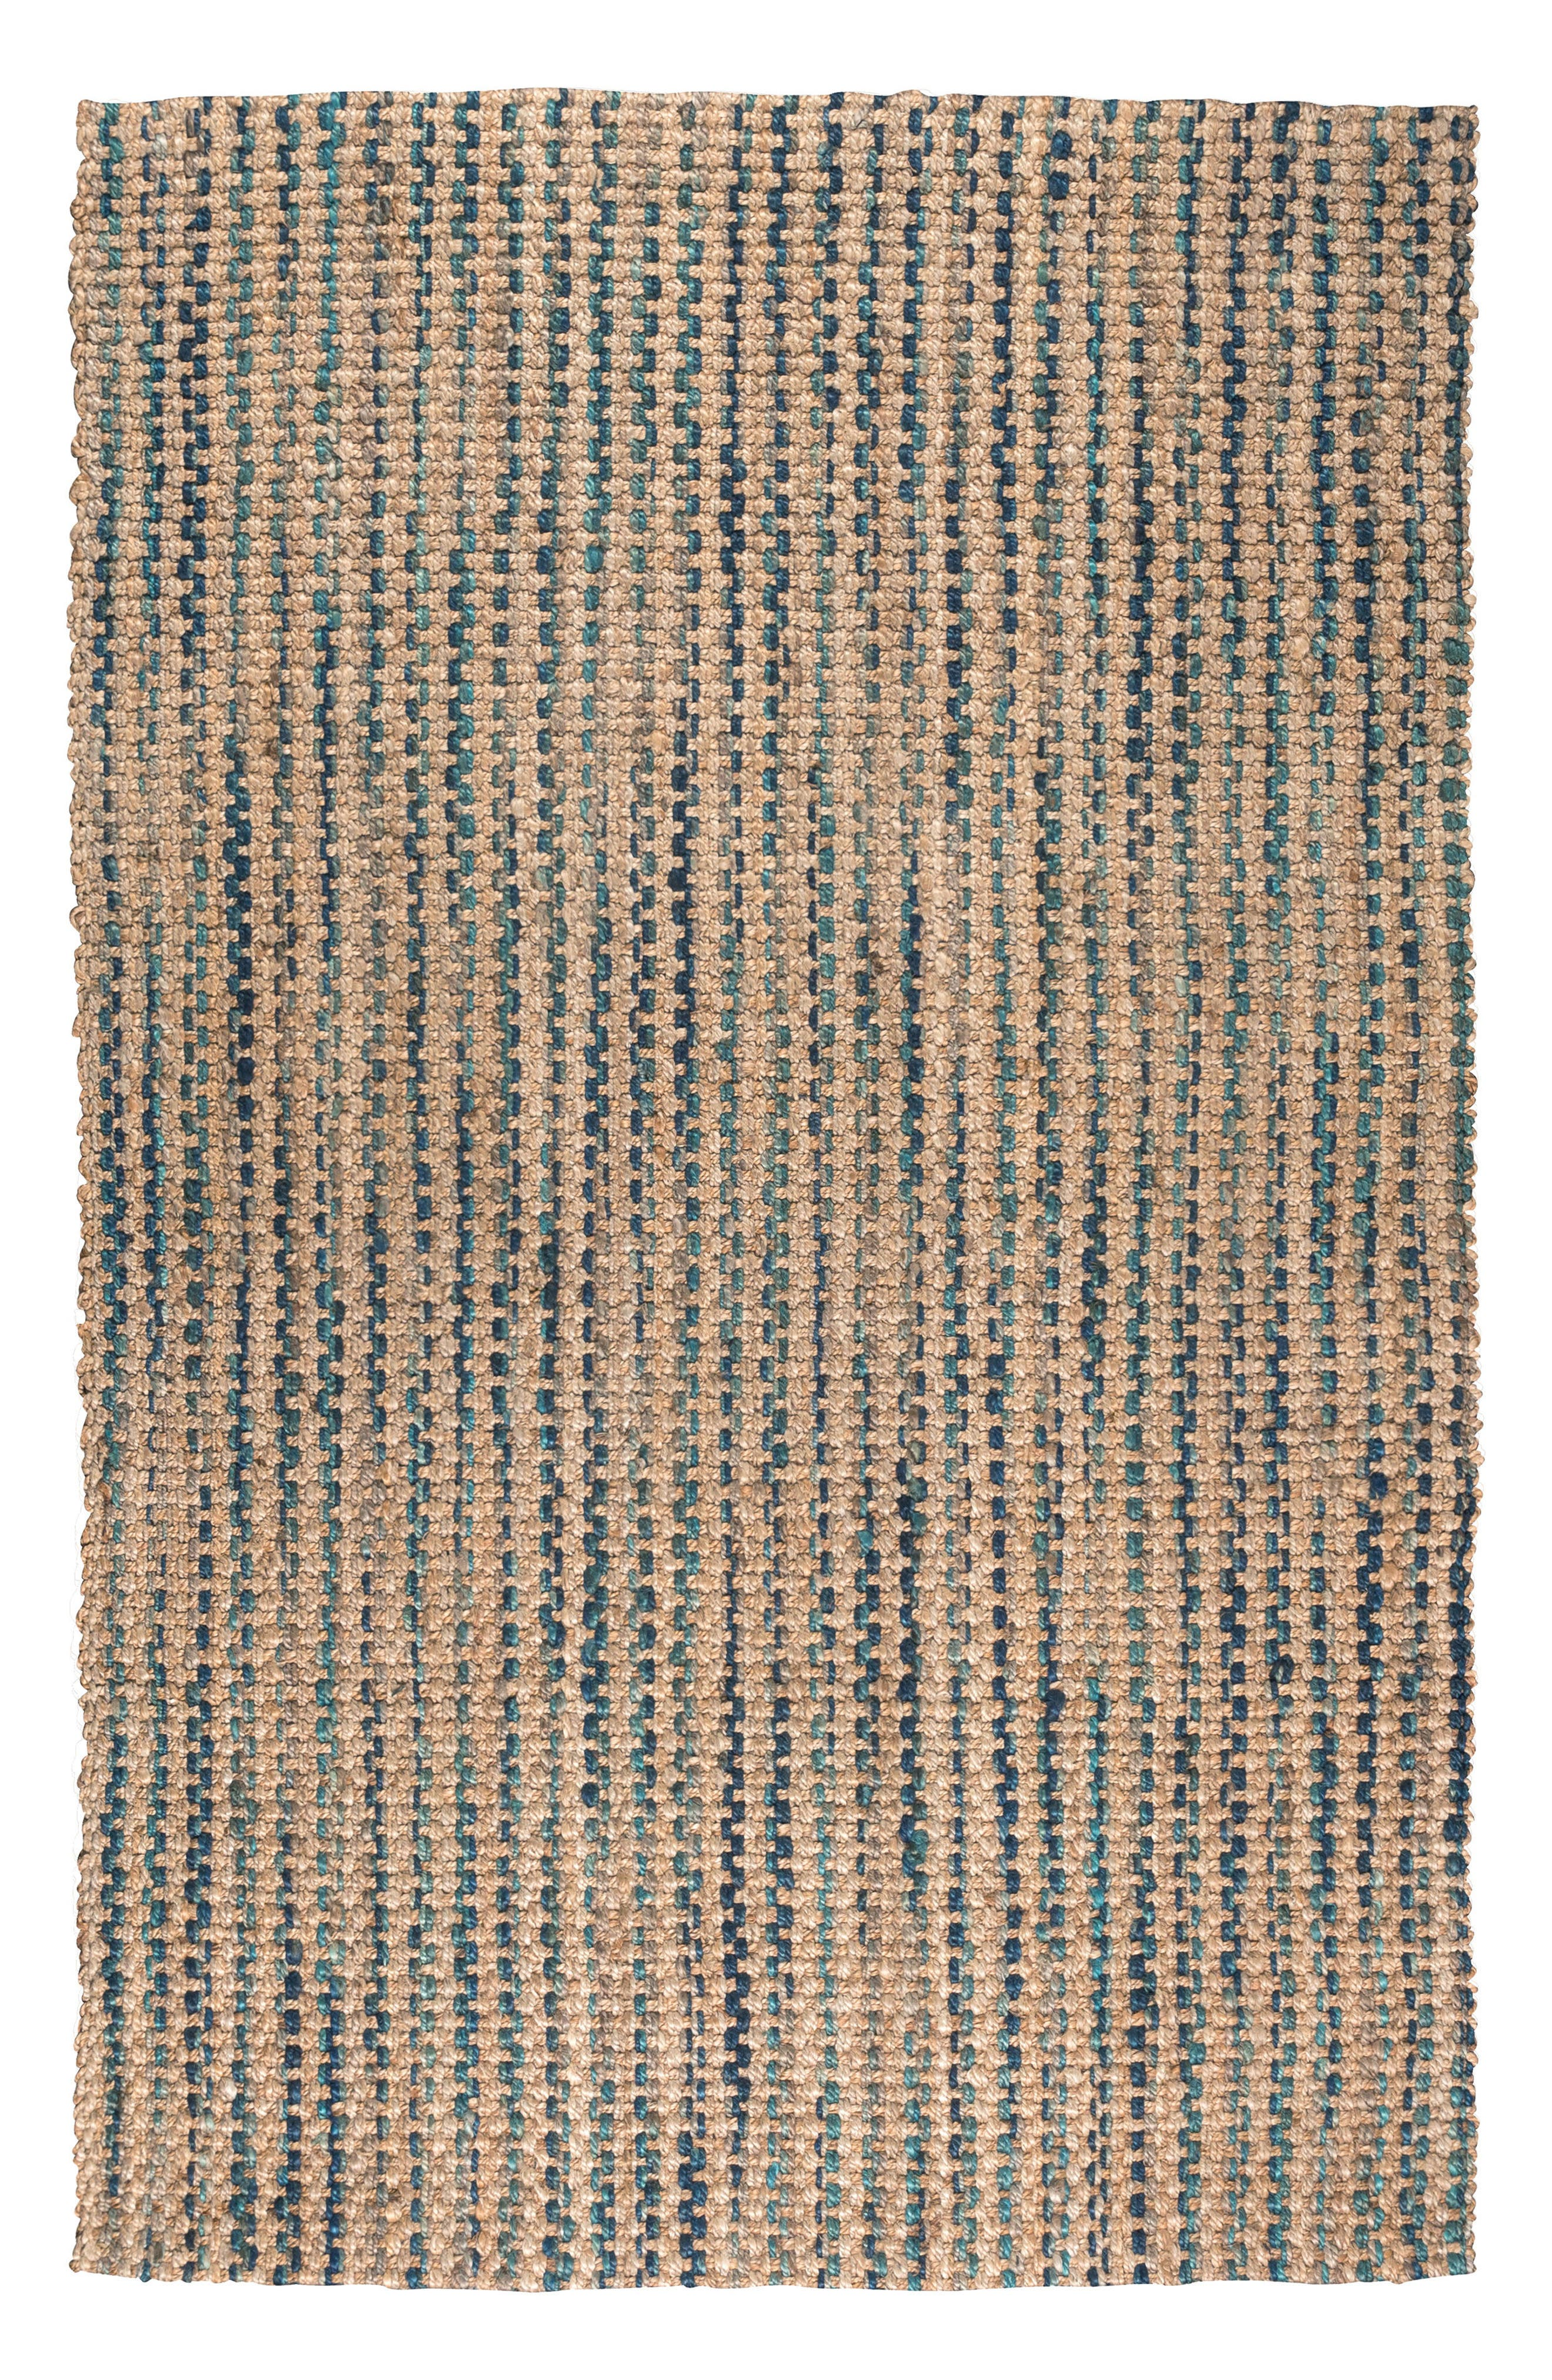 Ladera Handwoven Rug,                             Main thumbnail 1, color,                             Navy/ Turquoise